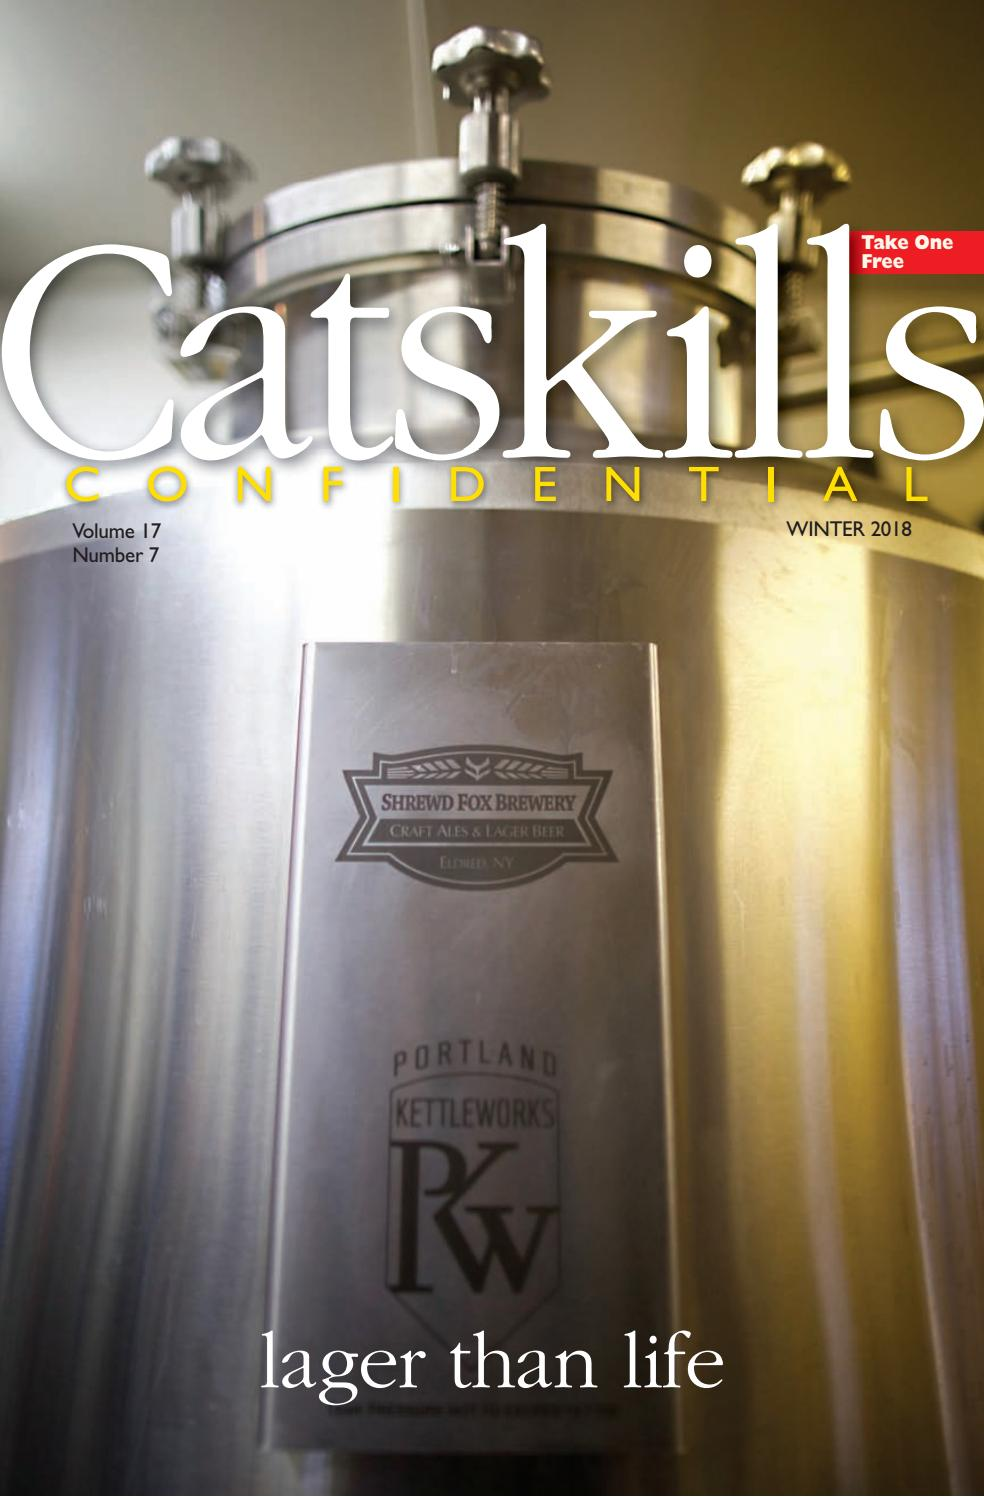 Catskills Confidential Winter 2018 By Sullivan County